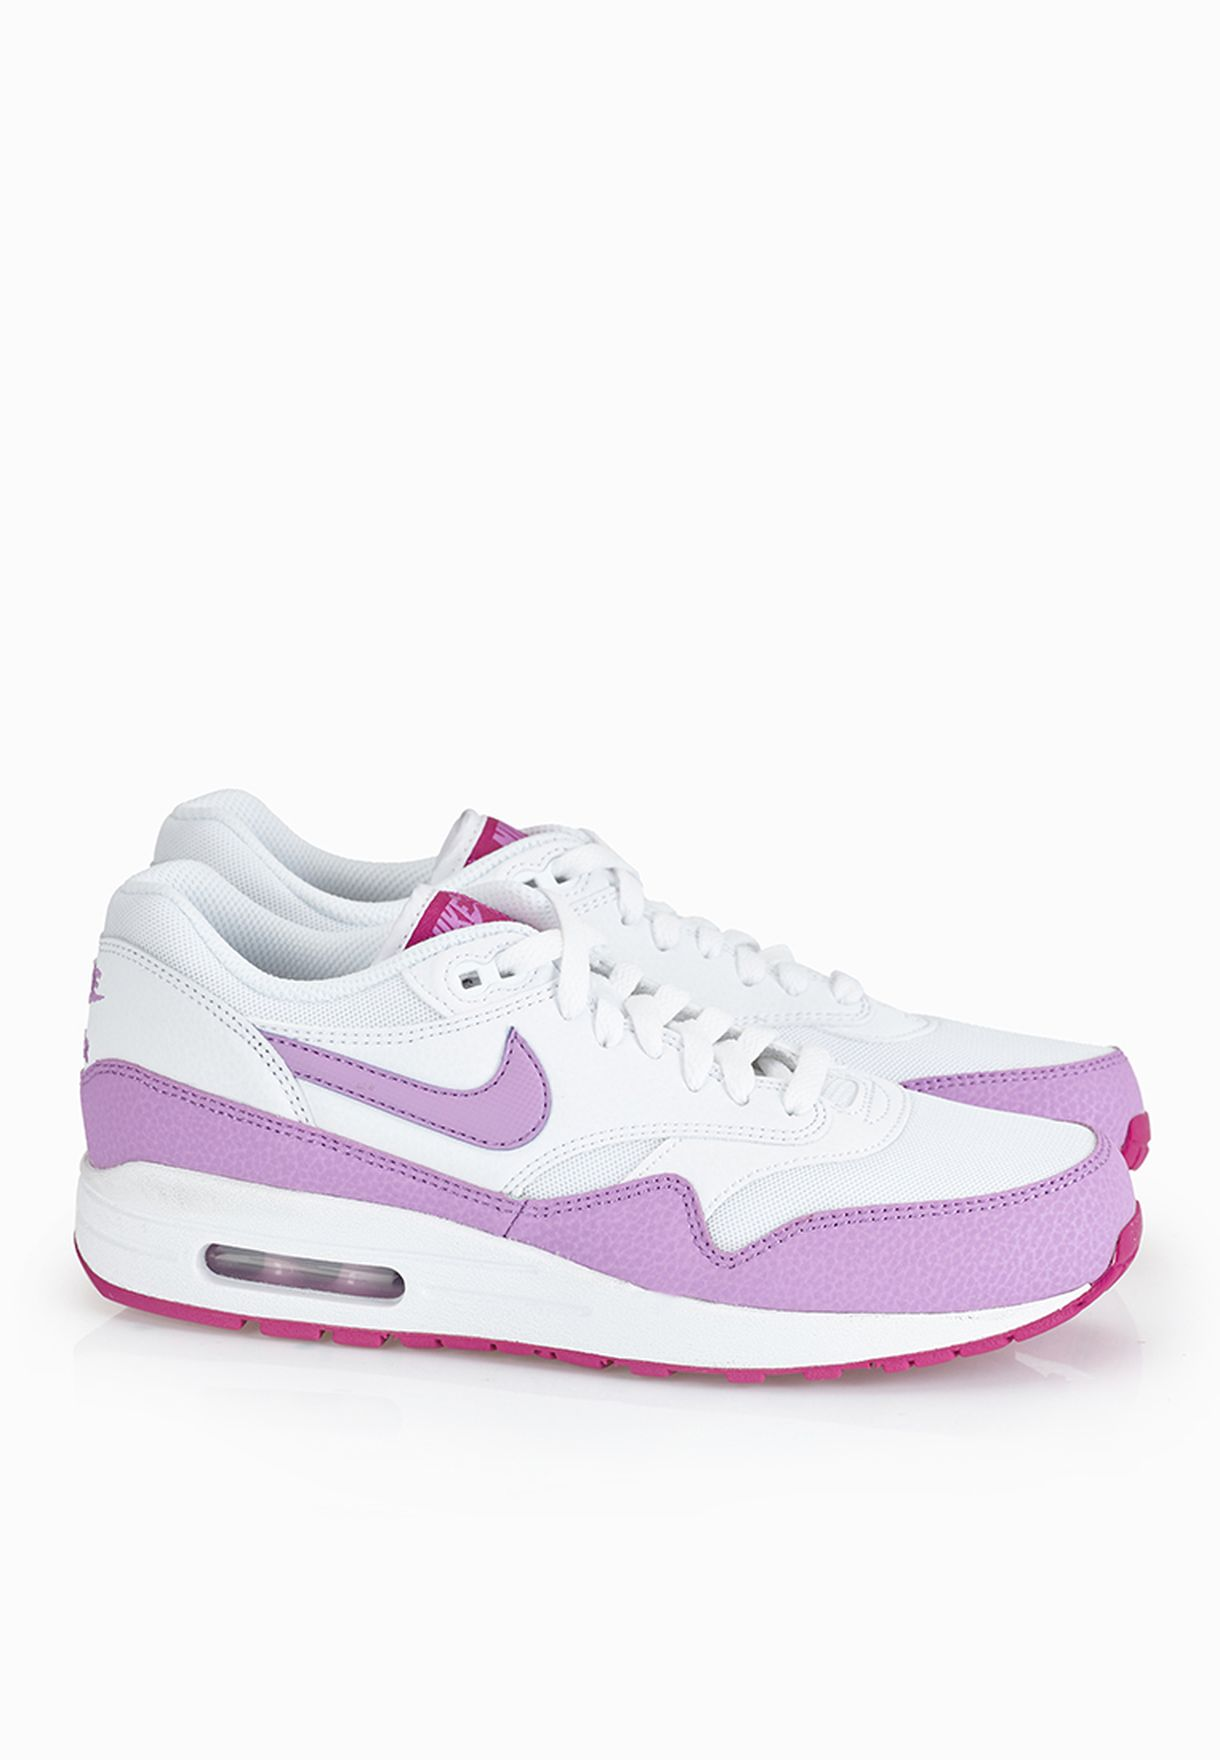 100% authentic b2a69 50398 ... max 1 essential sneakers f16f7 3953c cheapest air max 1 essential  sneakers f16f7 3953c  promo code for nike air max 1 essential for women shoes  white ...